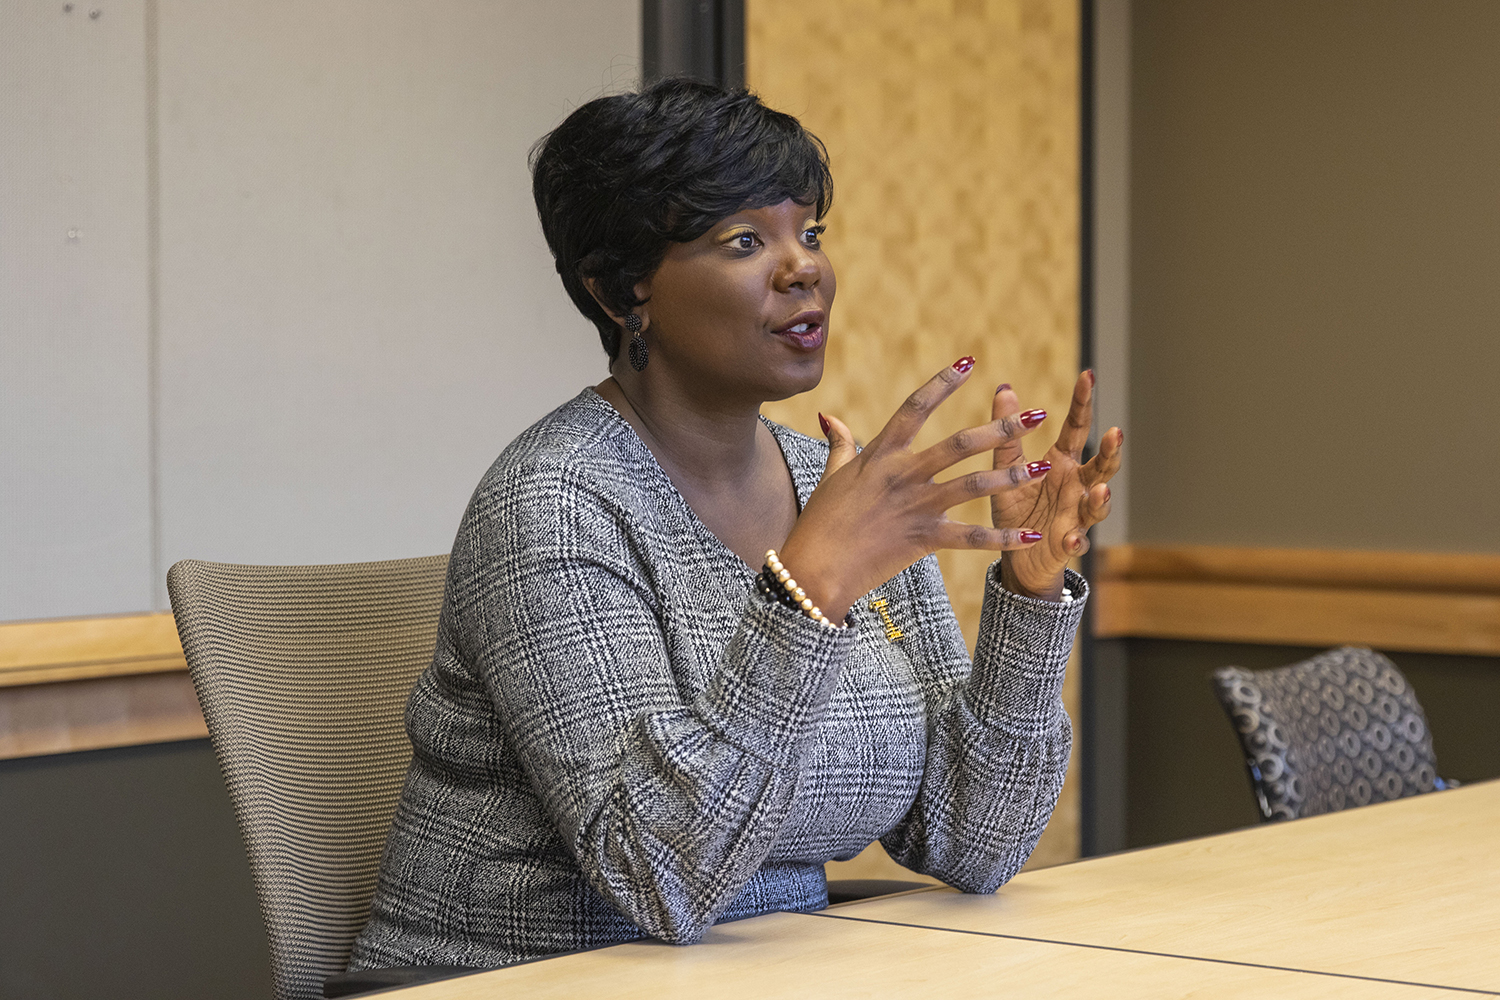 UI VP for Student Life Melissa Shivers speaks in an interview with The Daily Iowan on Tuesday, Oct. 30, 2018.